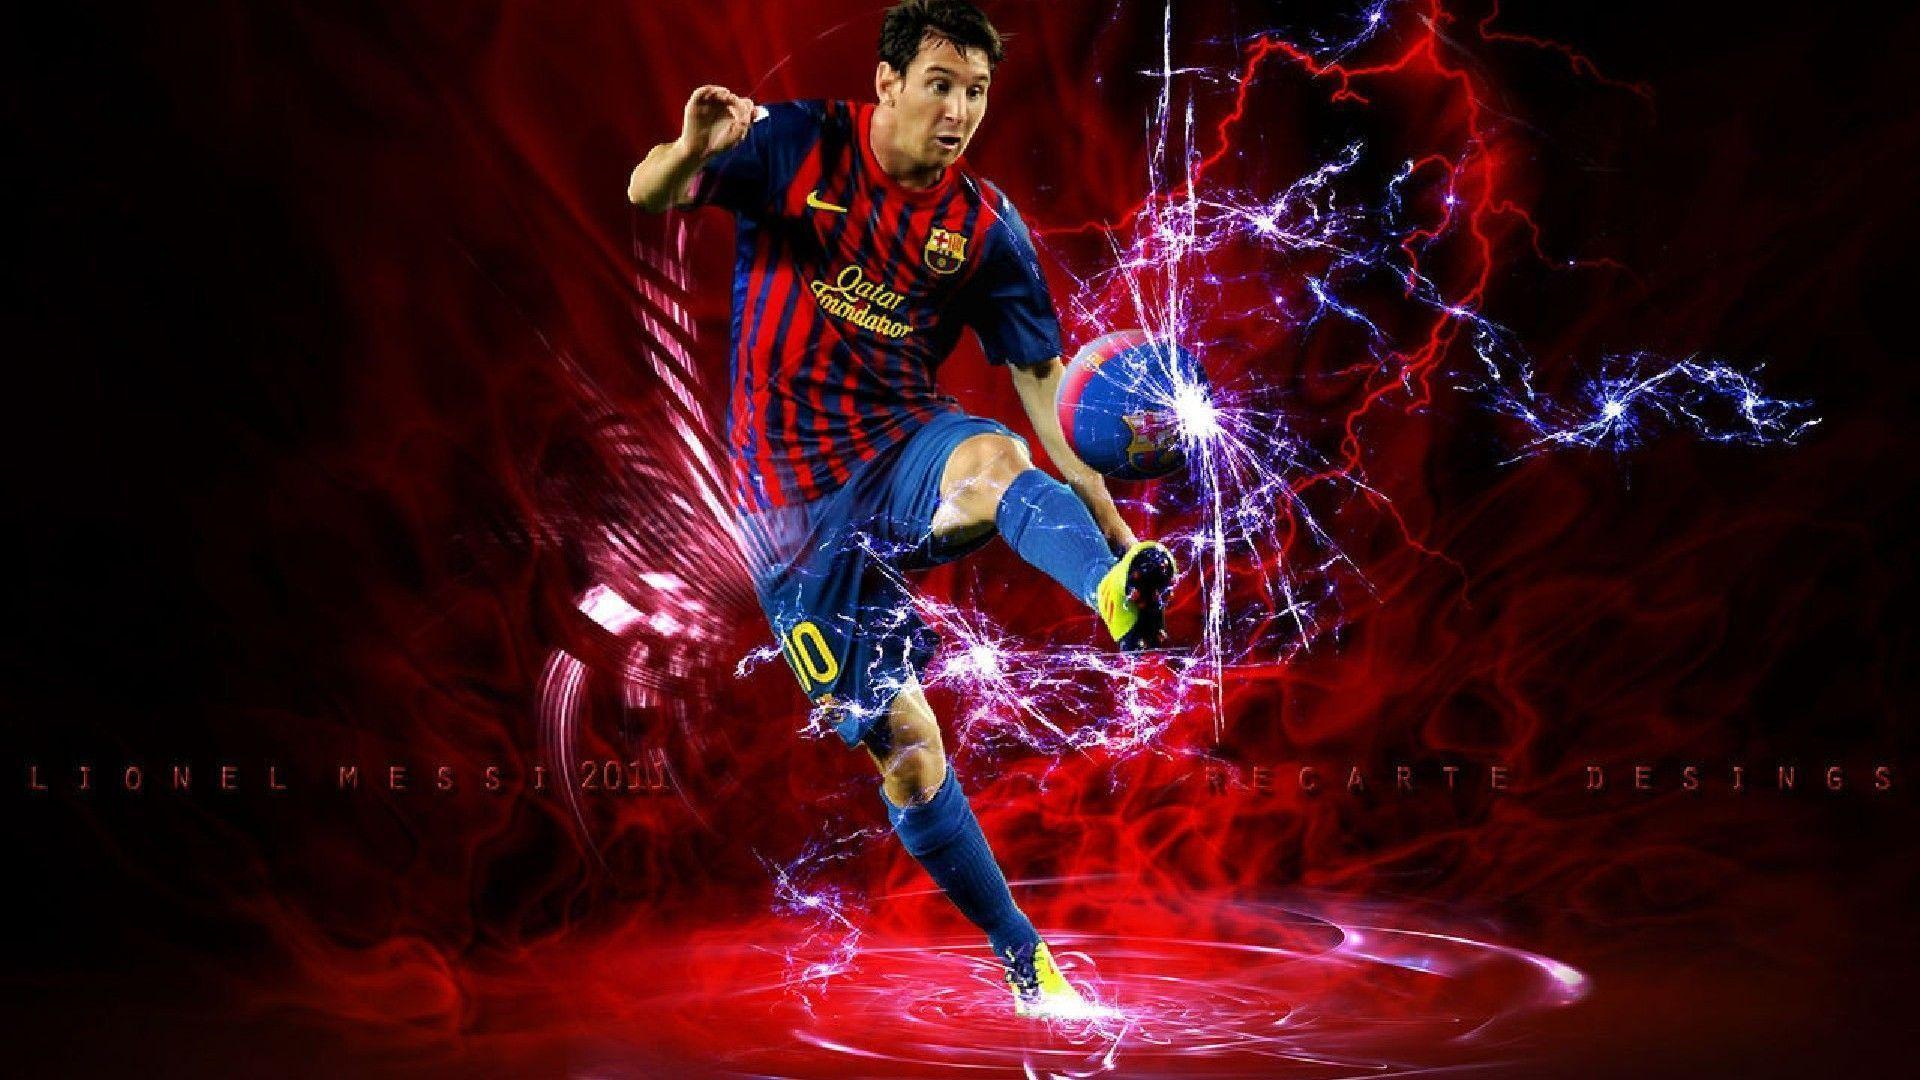 messi backgrounds 2016 wallpaper cave